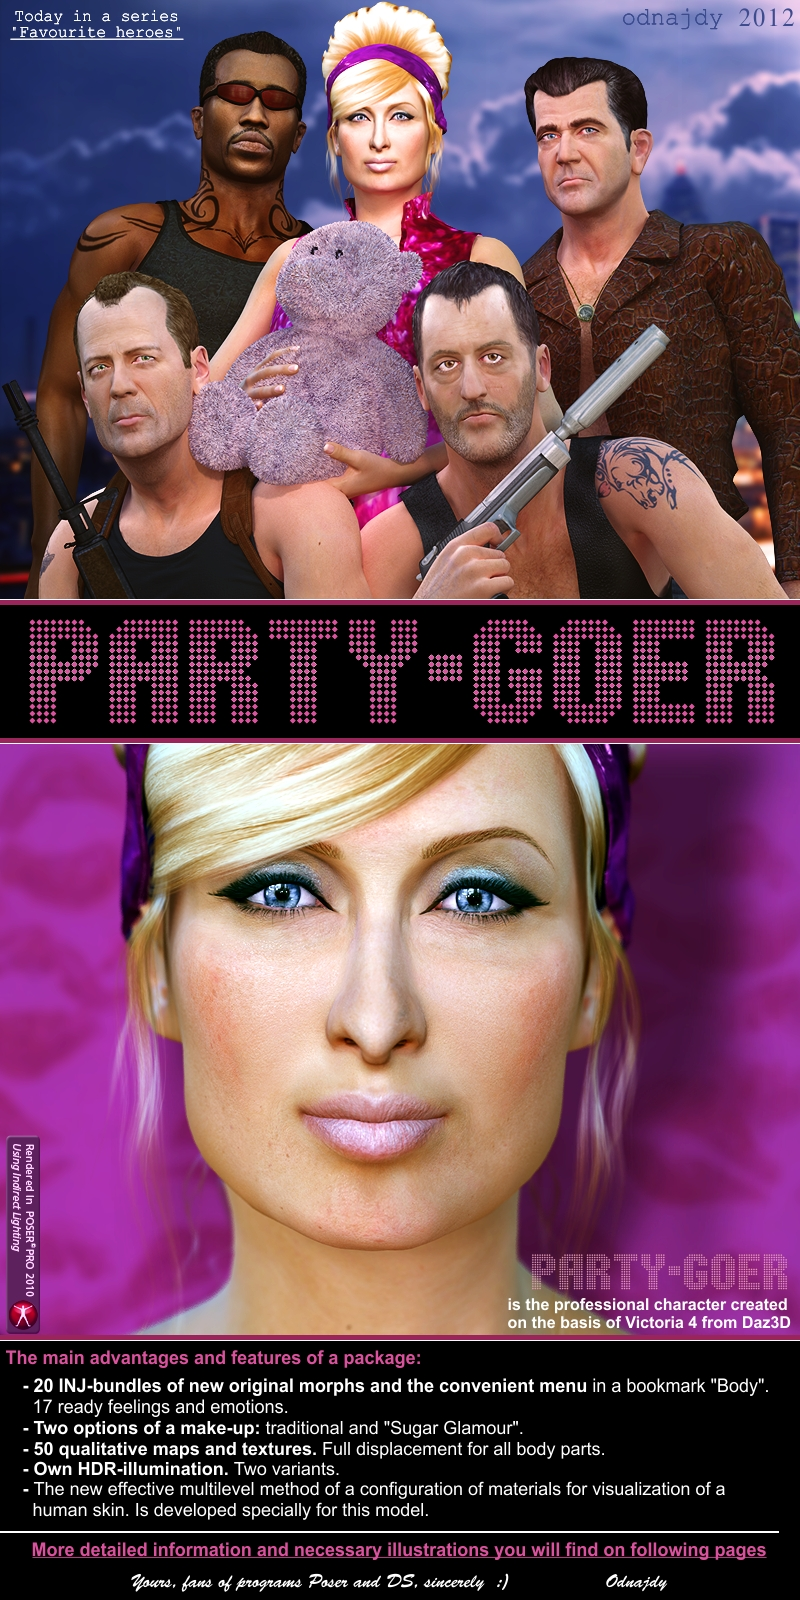 PARTY-GOER for V4.2